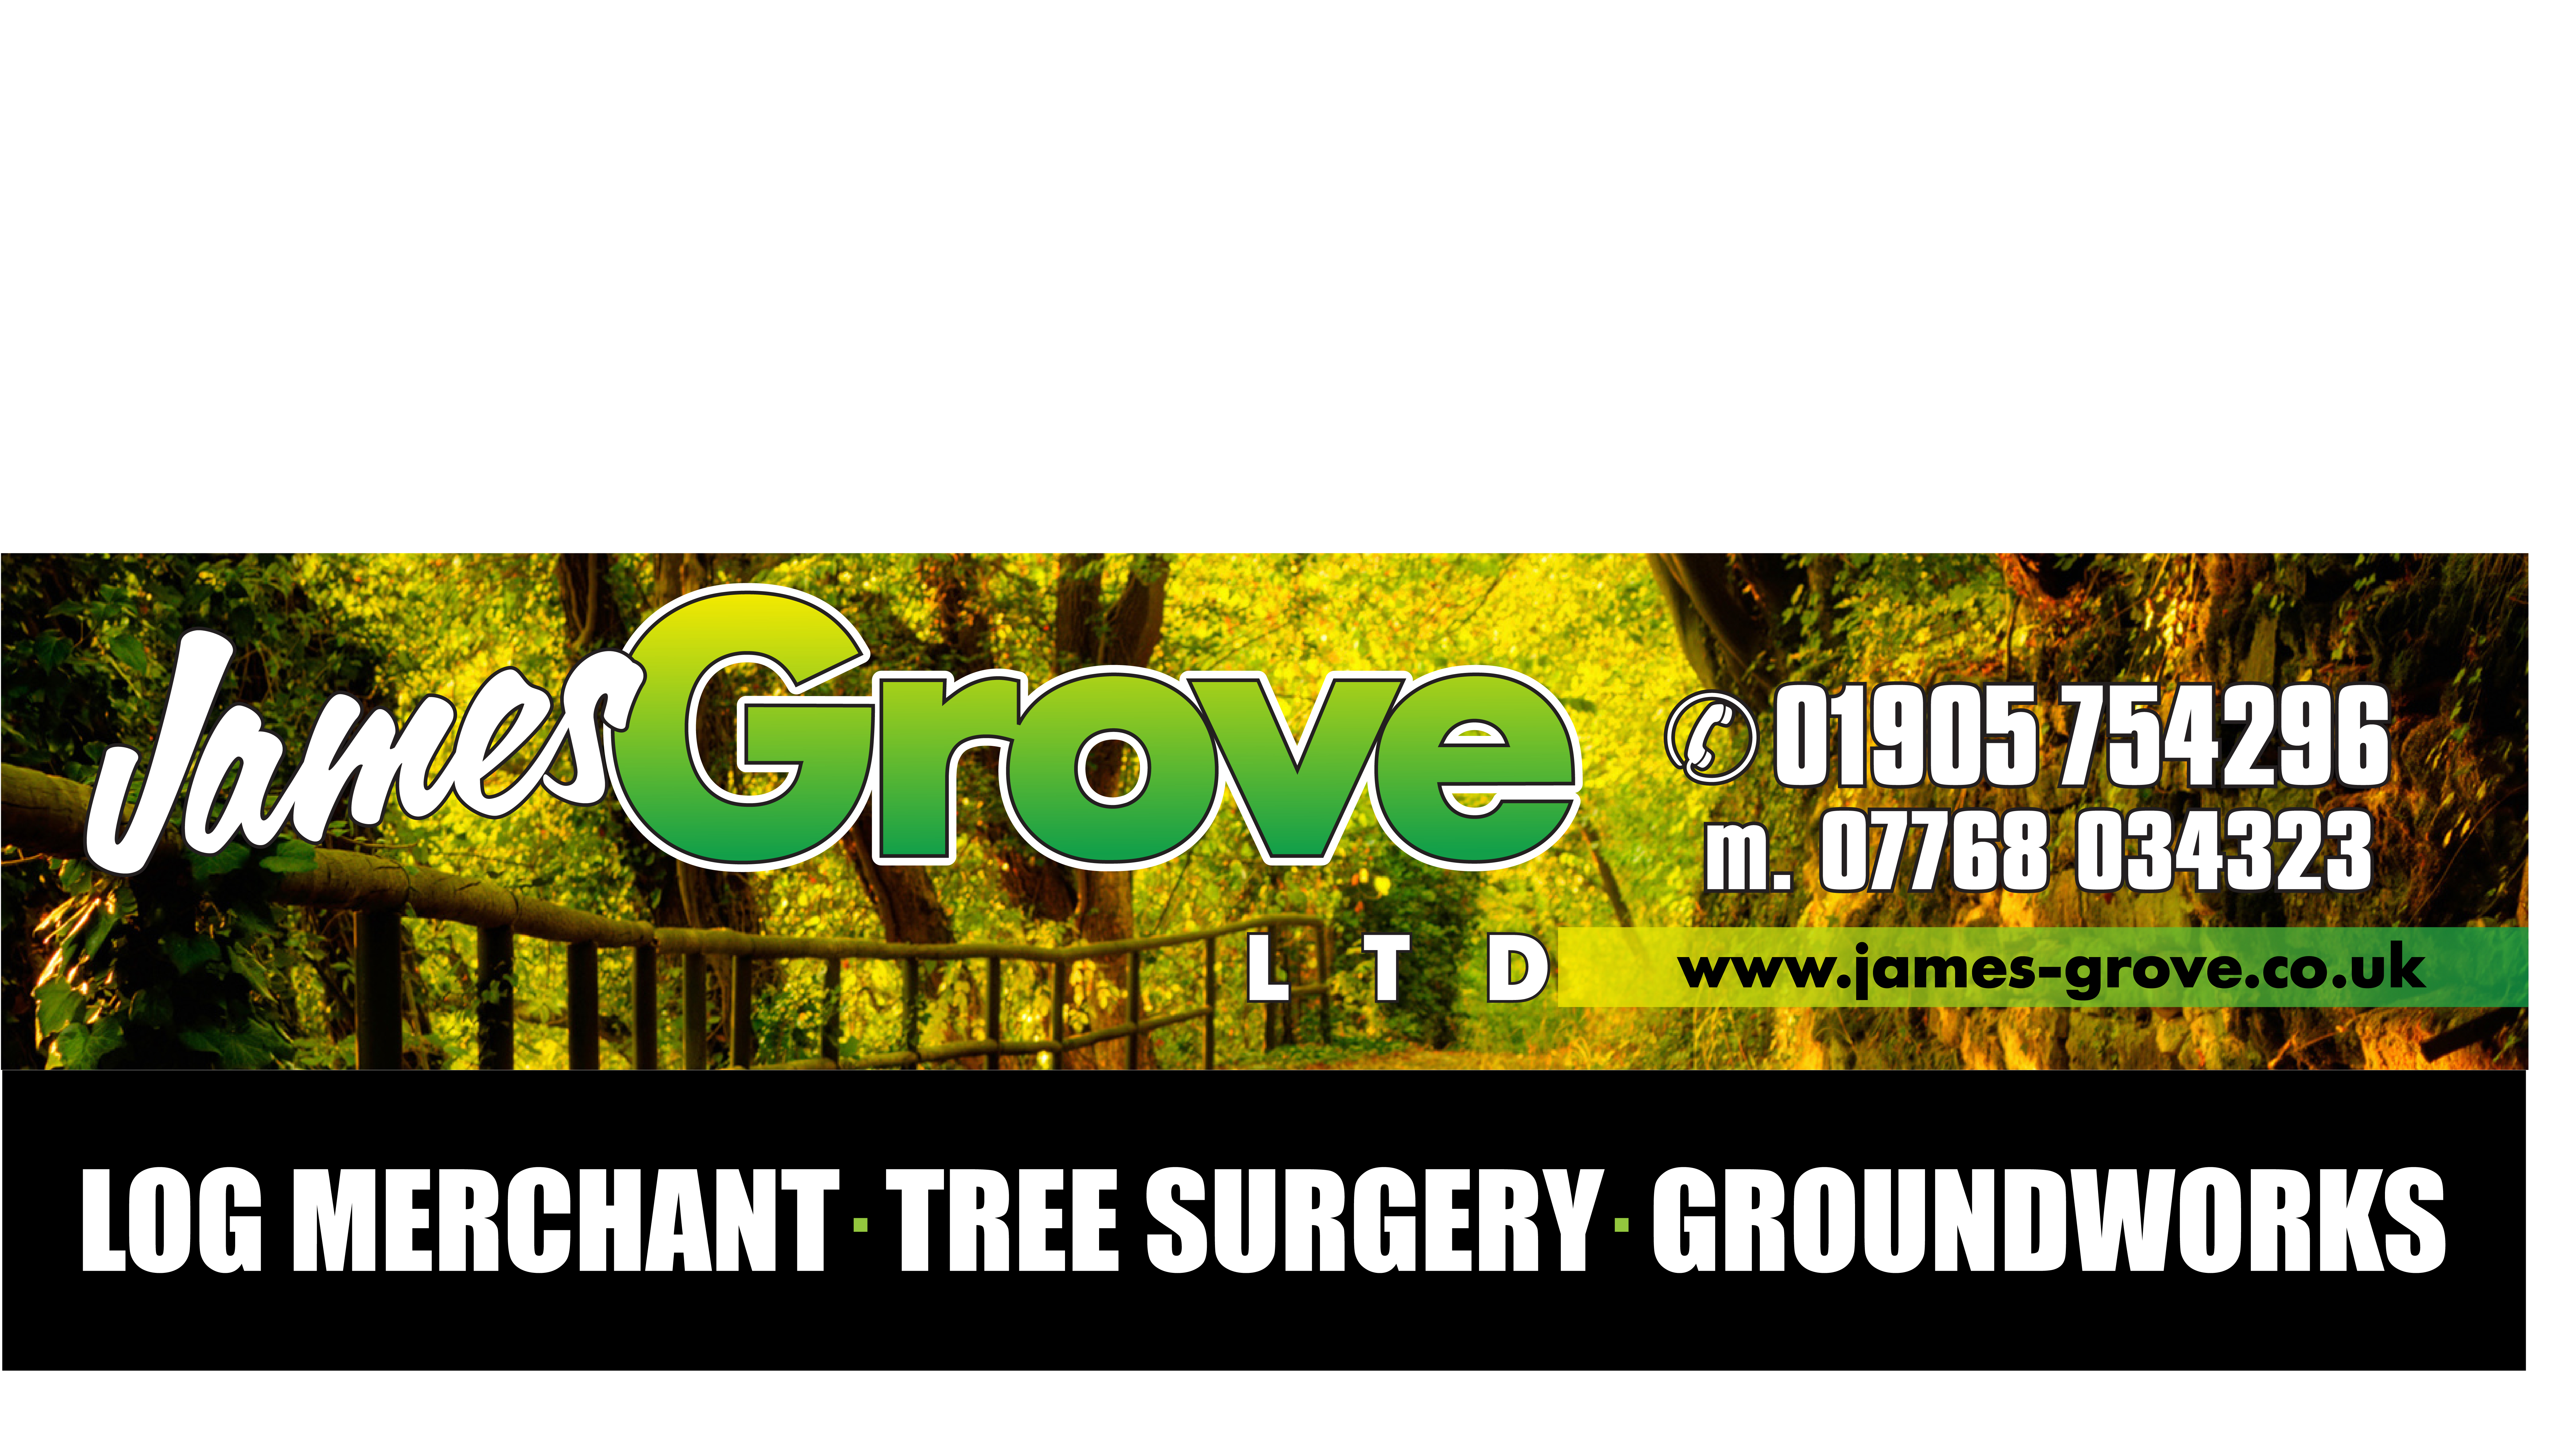 JAMES GROVE LTD